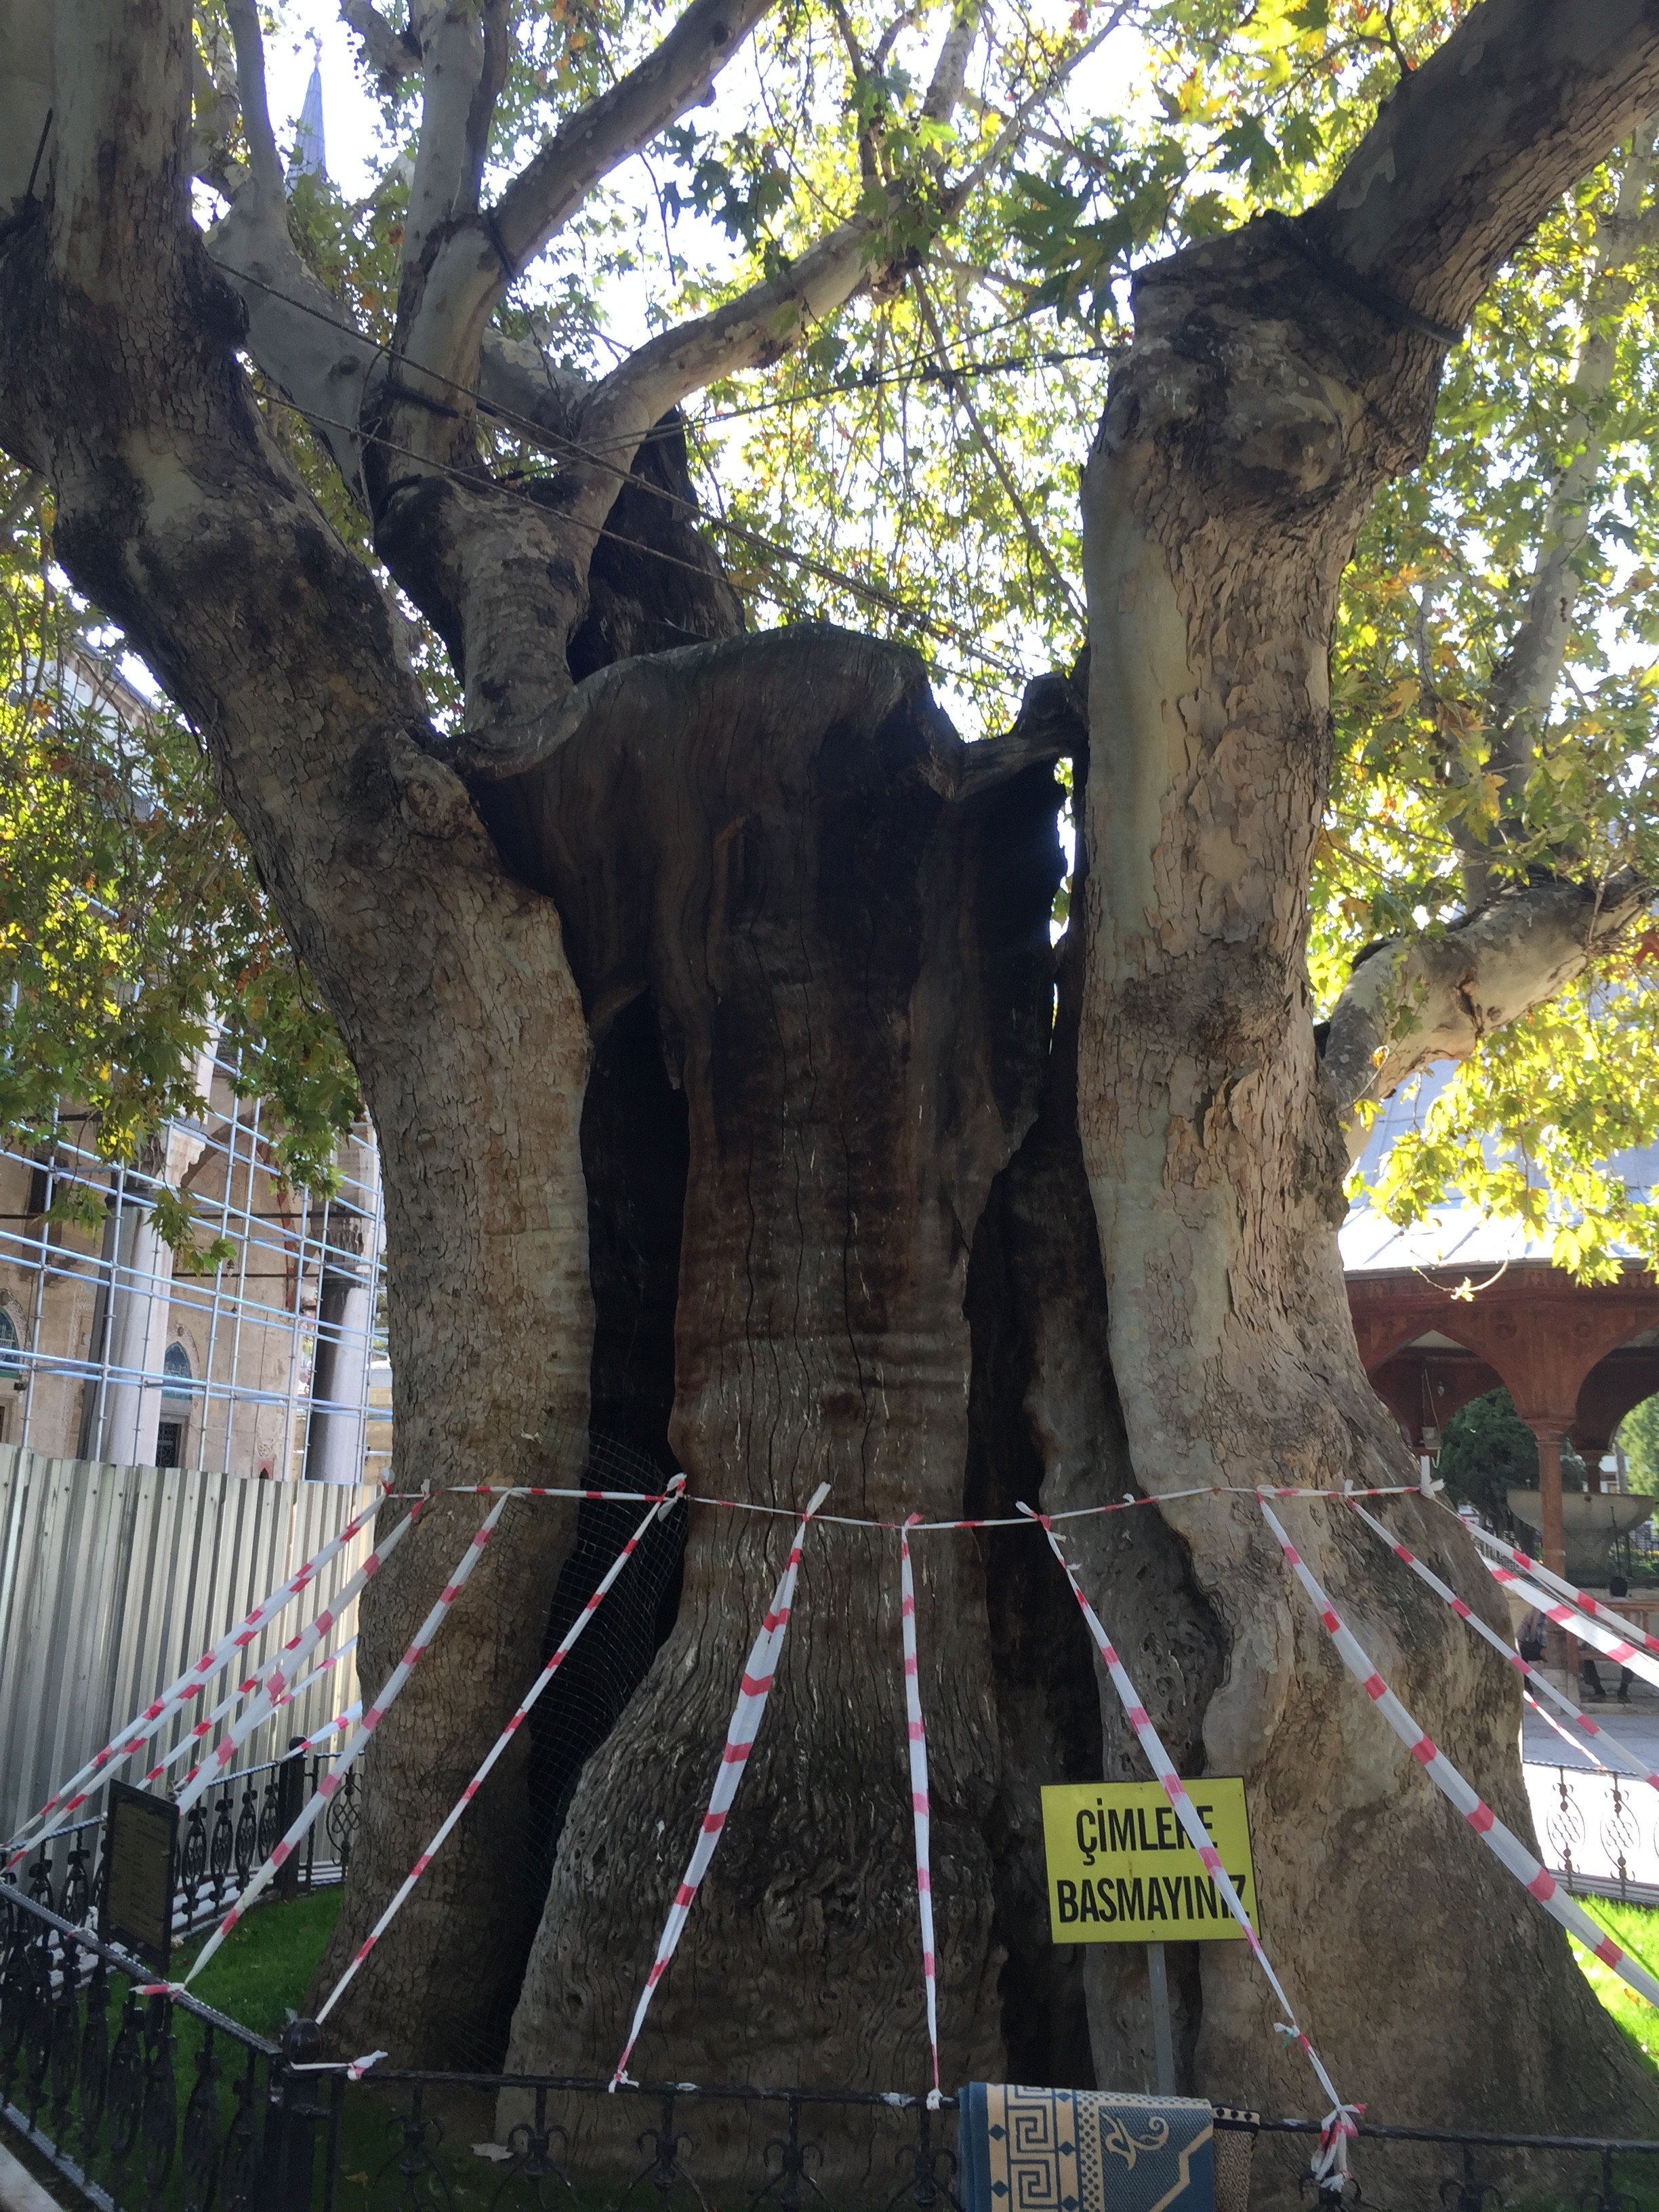 Huge, hollow tree at the mosque all held together by wires